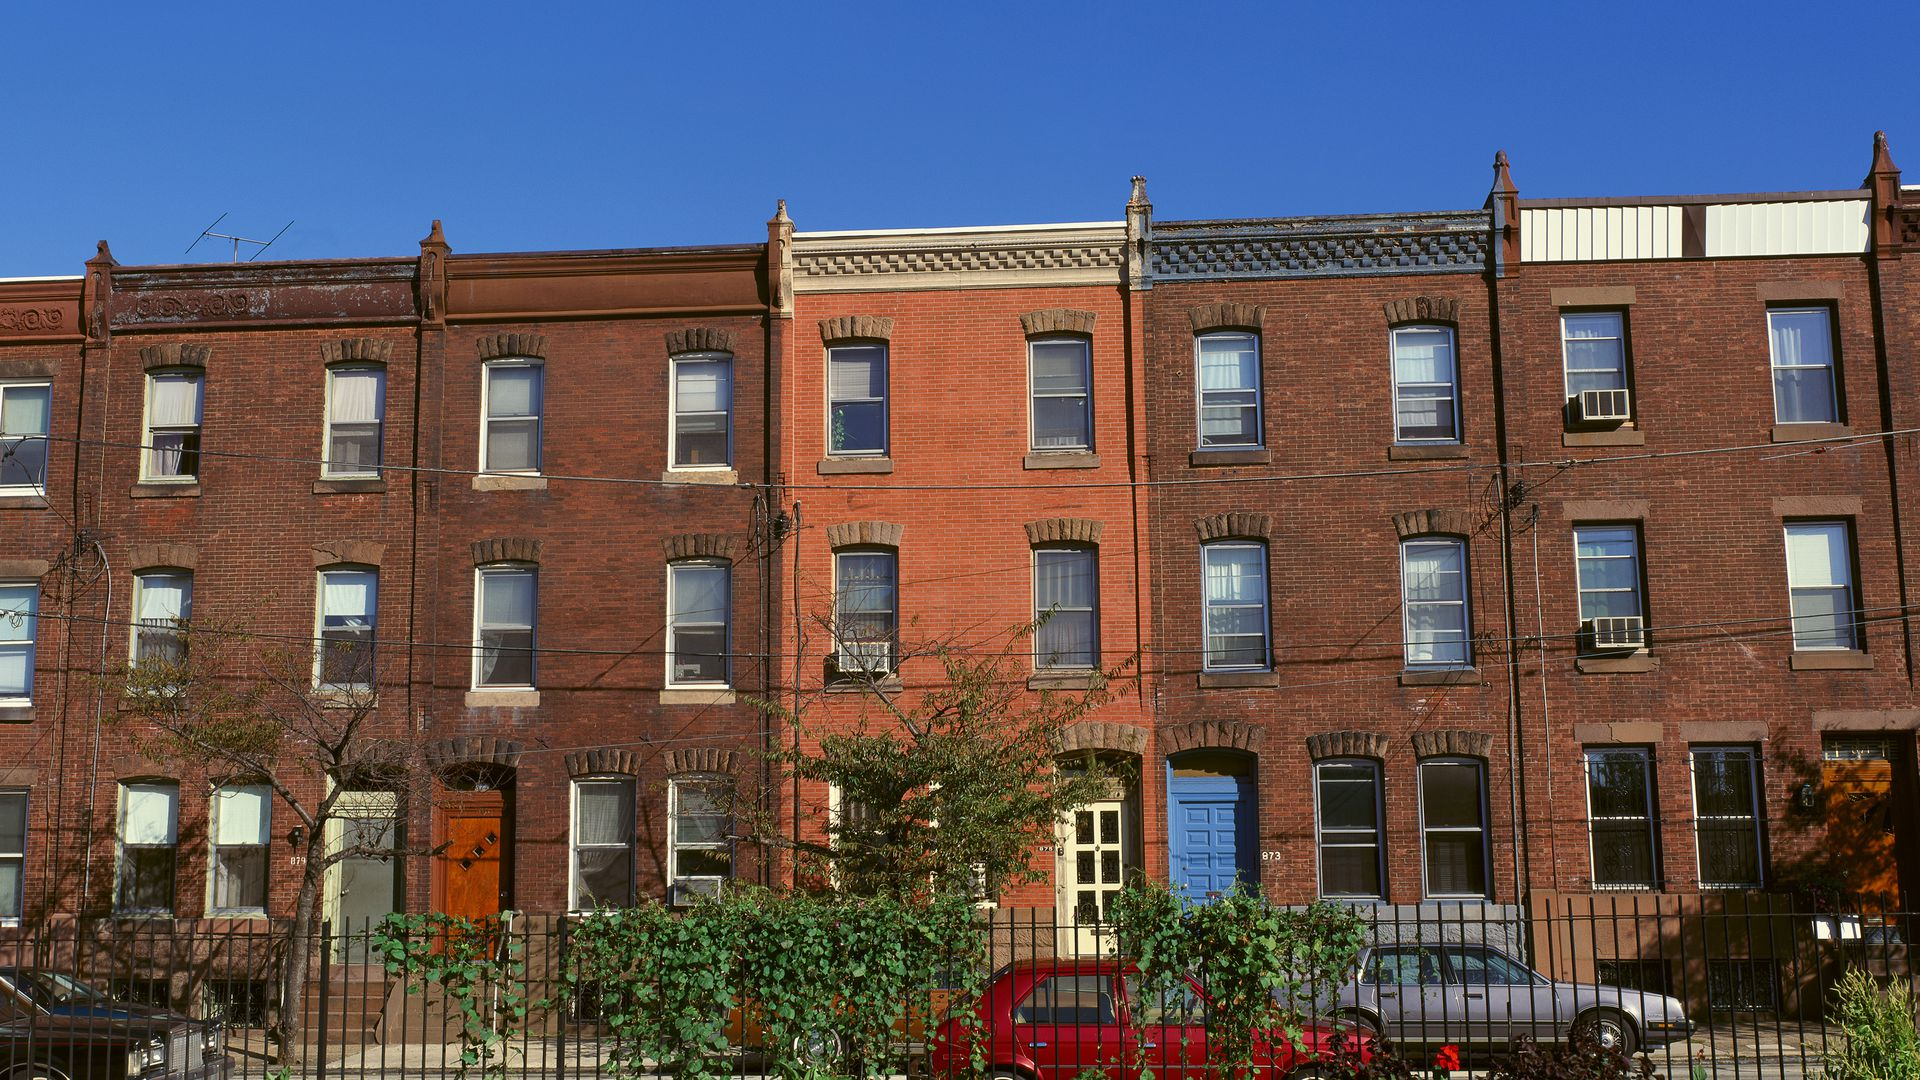 A view of red brick row houses of Philadelphia.